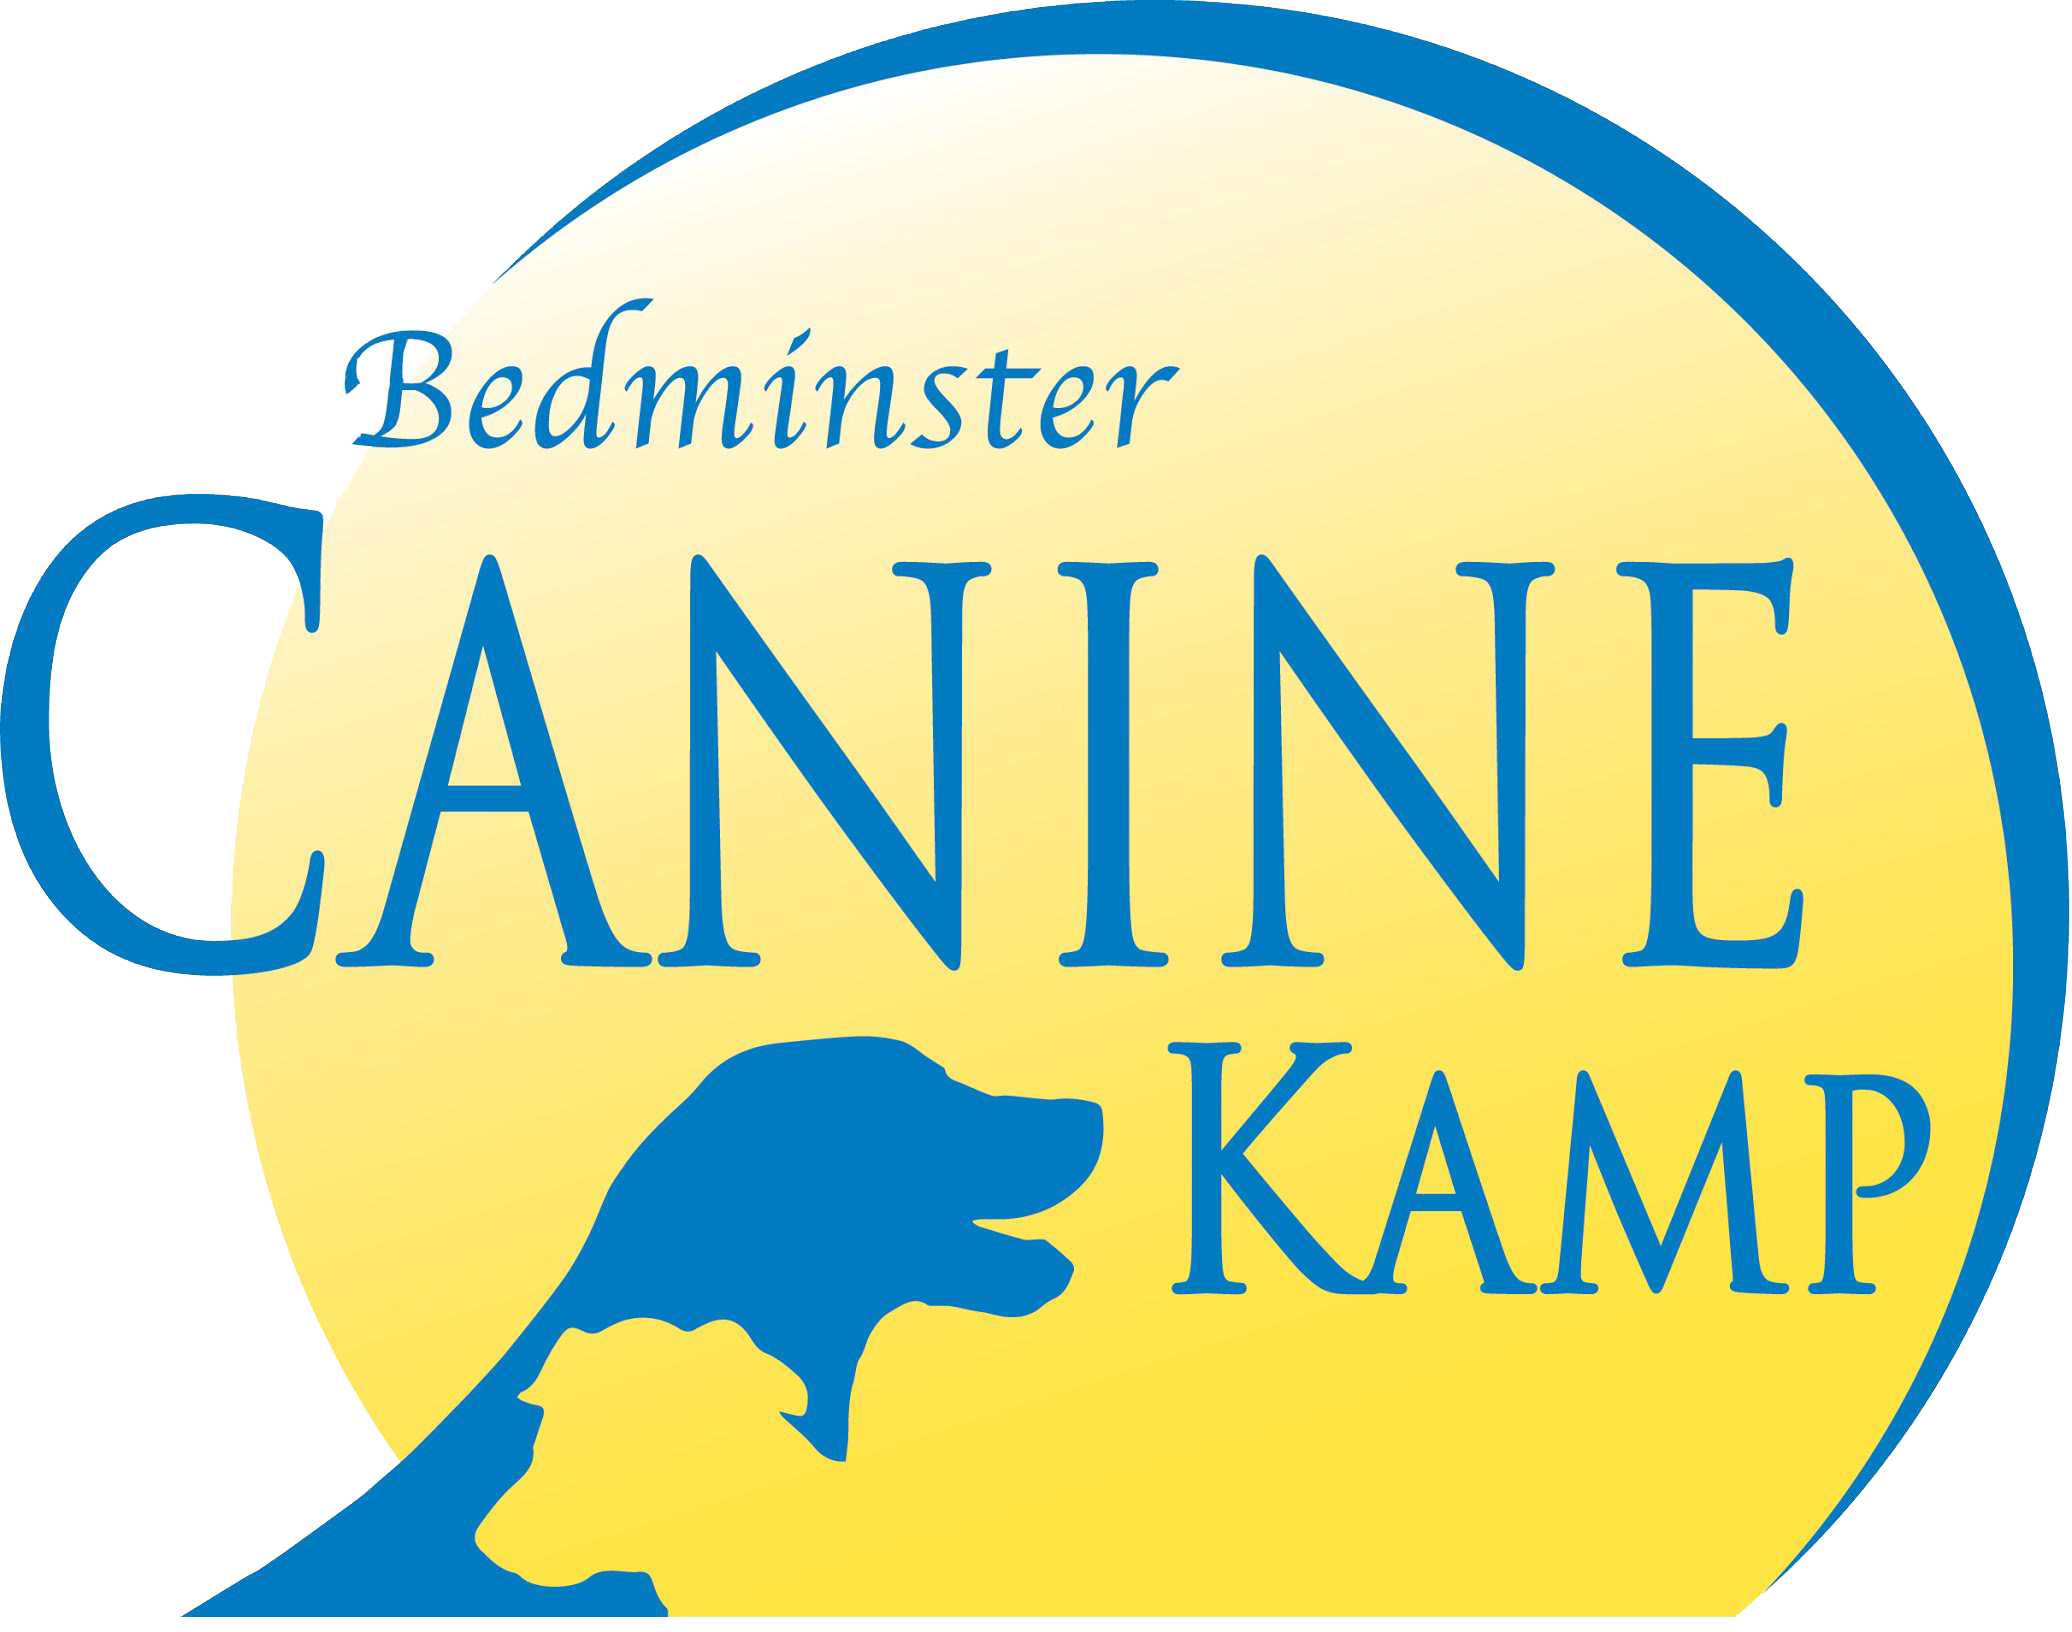 Bedminster Canine Kamp - Pet Day Care and Boarding